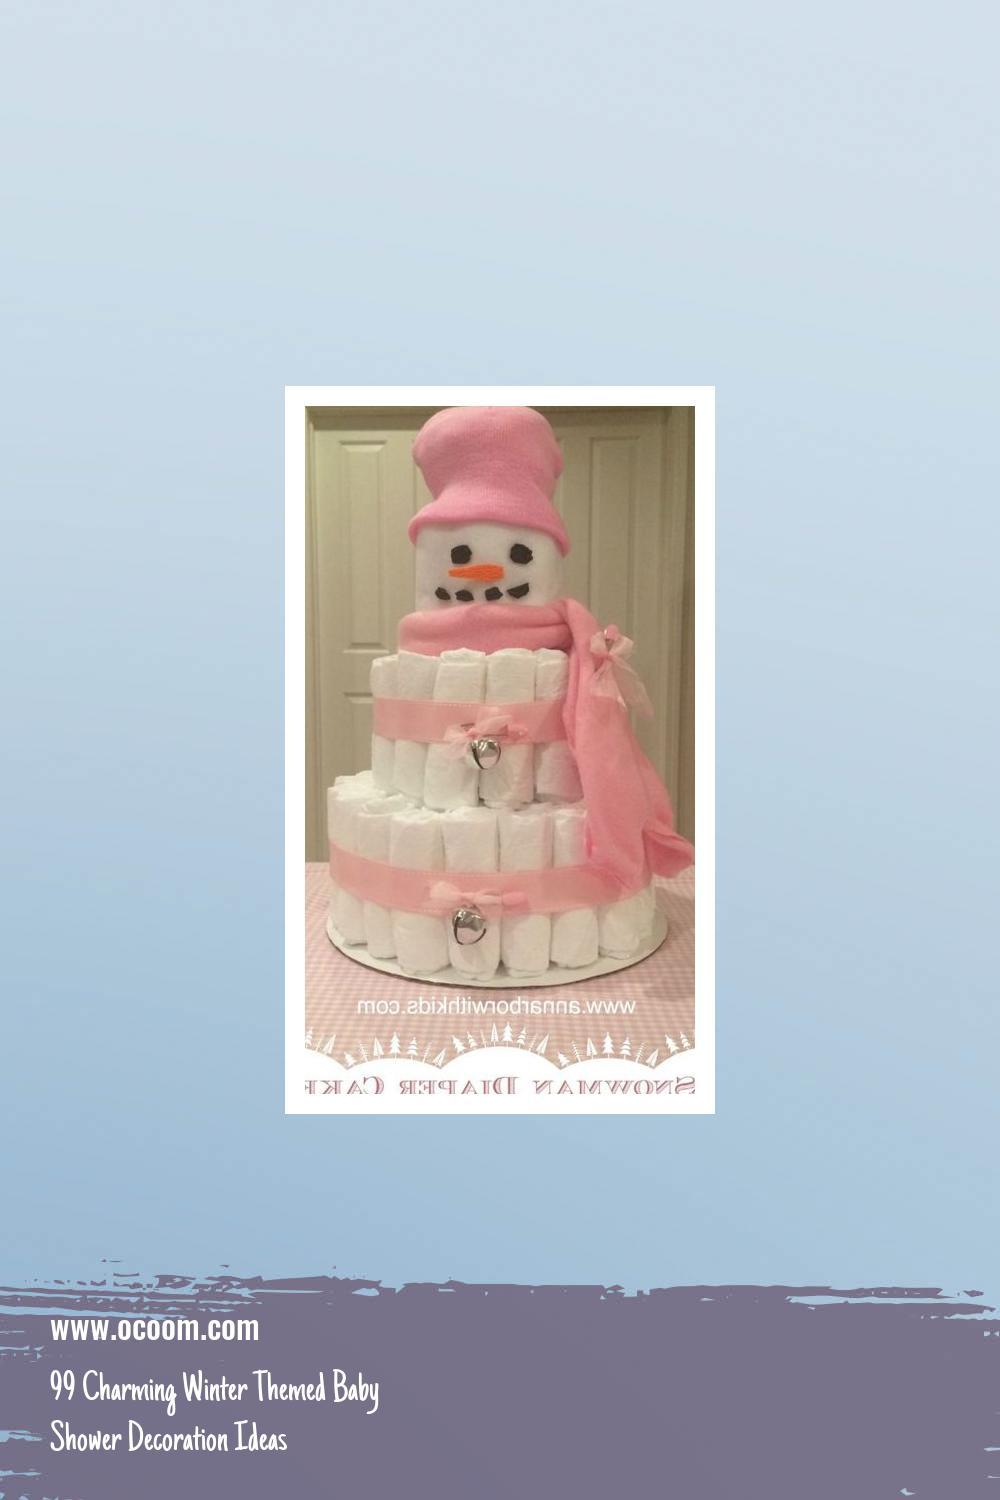 99 Charming Winter Themed Baby Shower Decoration Ideas 44